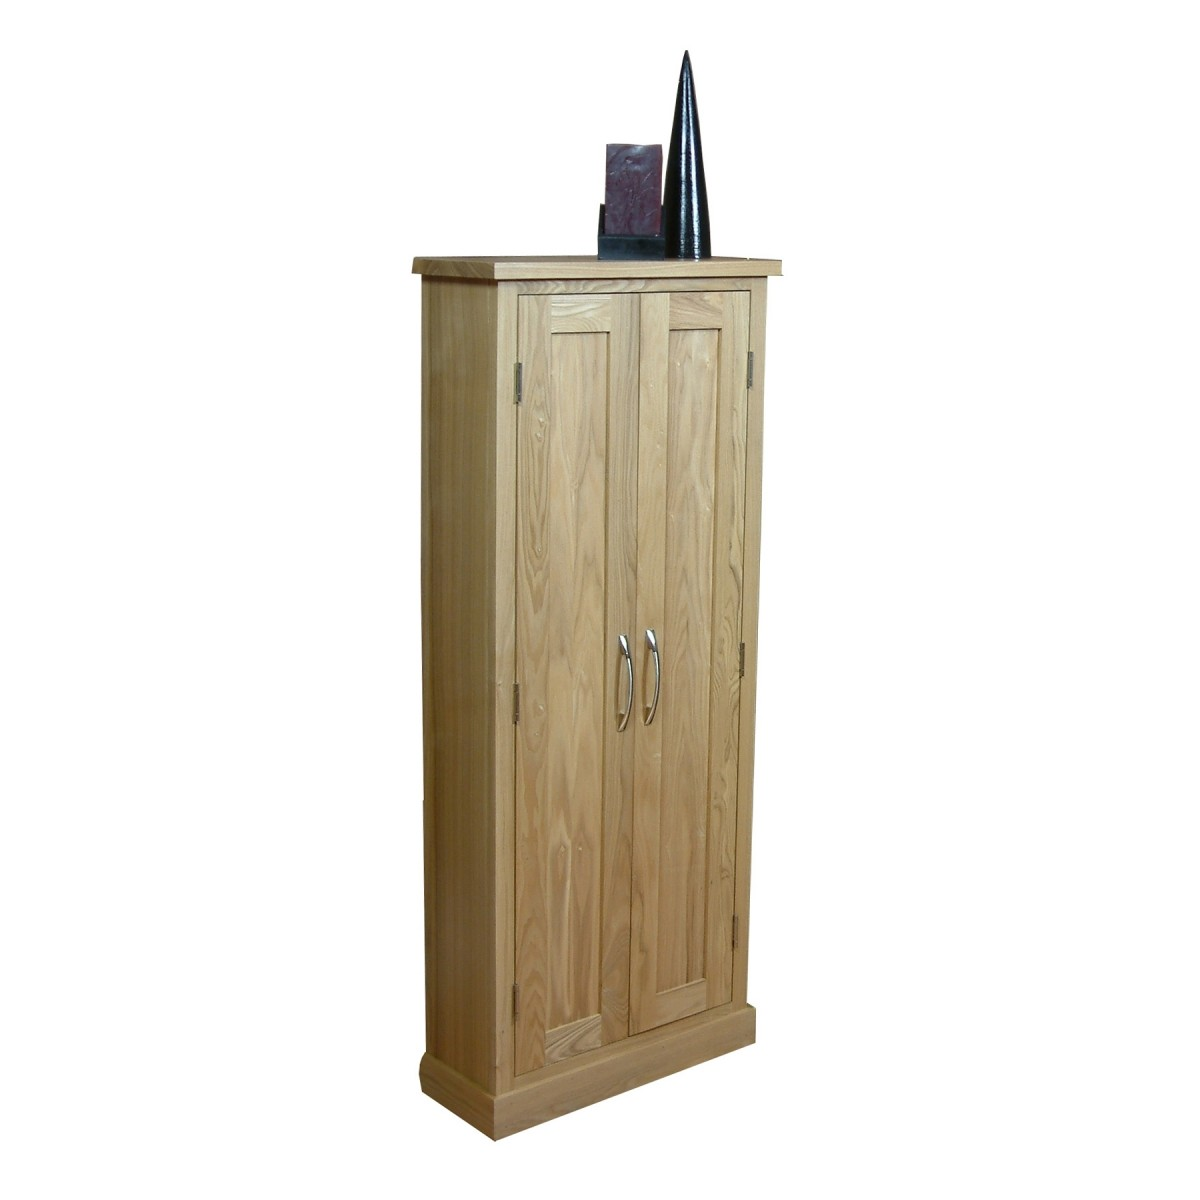 baumhaus mobel solid oak dvd storage cupboard cor17b baumhaus mobel solid oak